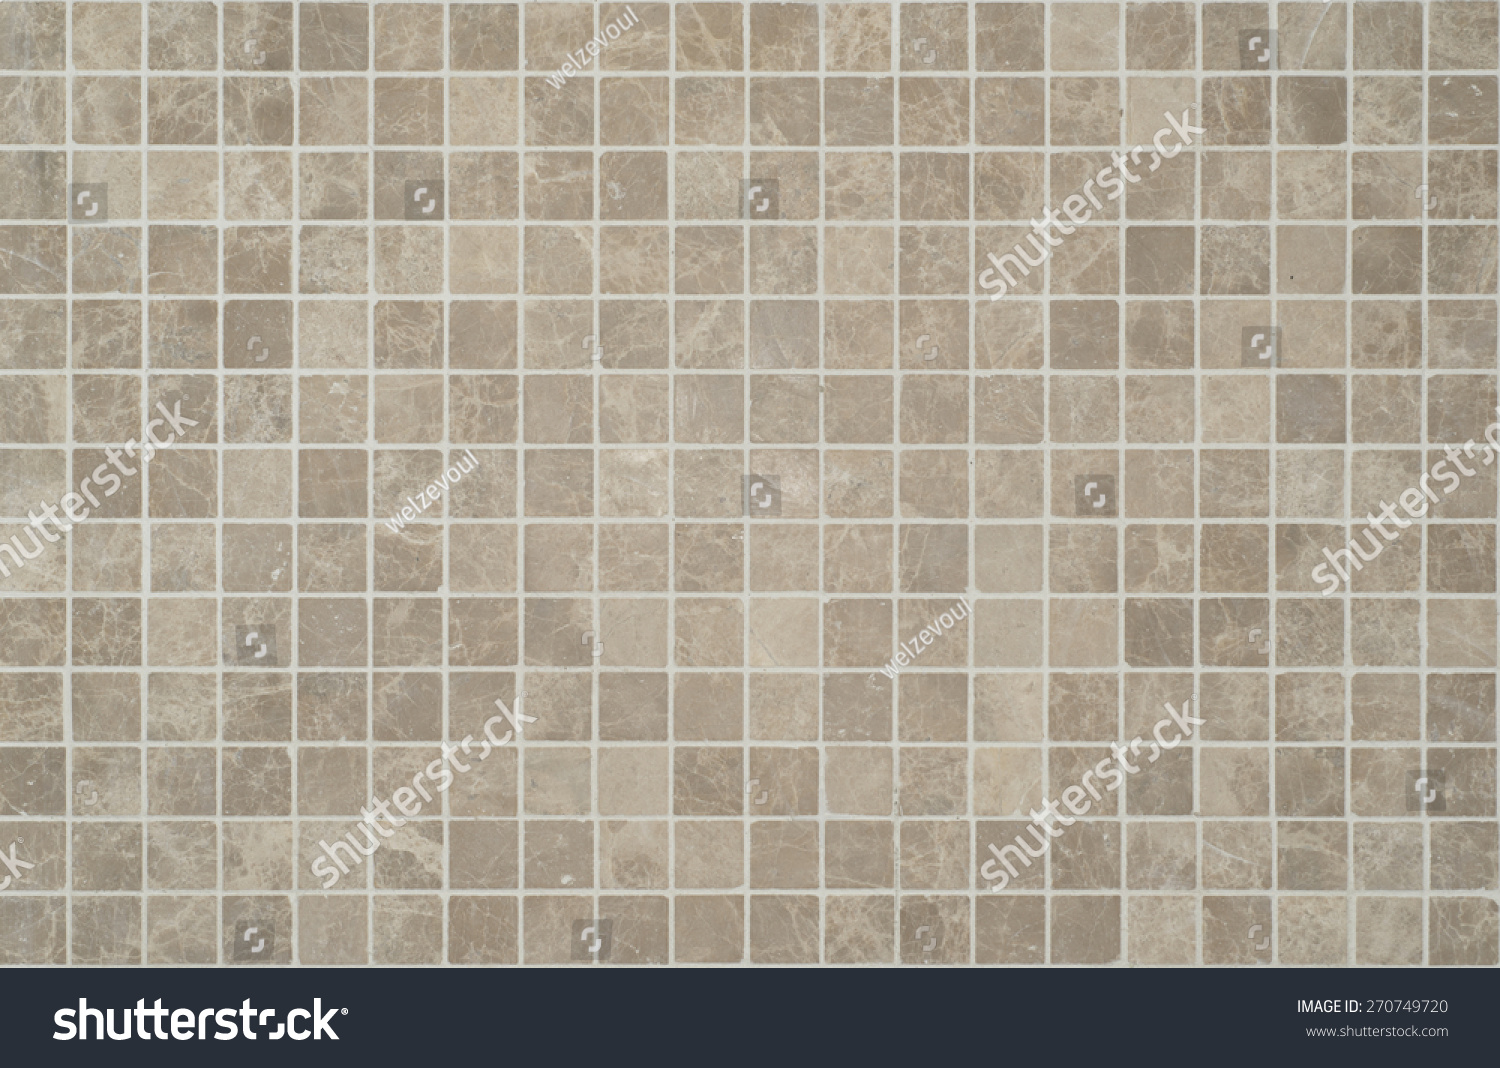 Texture Fine Ceramic Tiles Cream Brown Stock Photo Edit Now